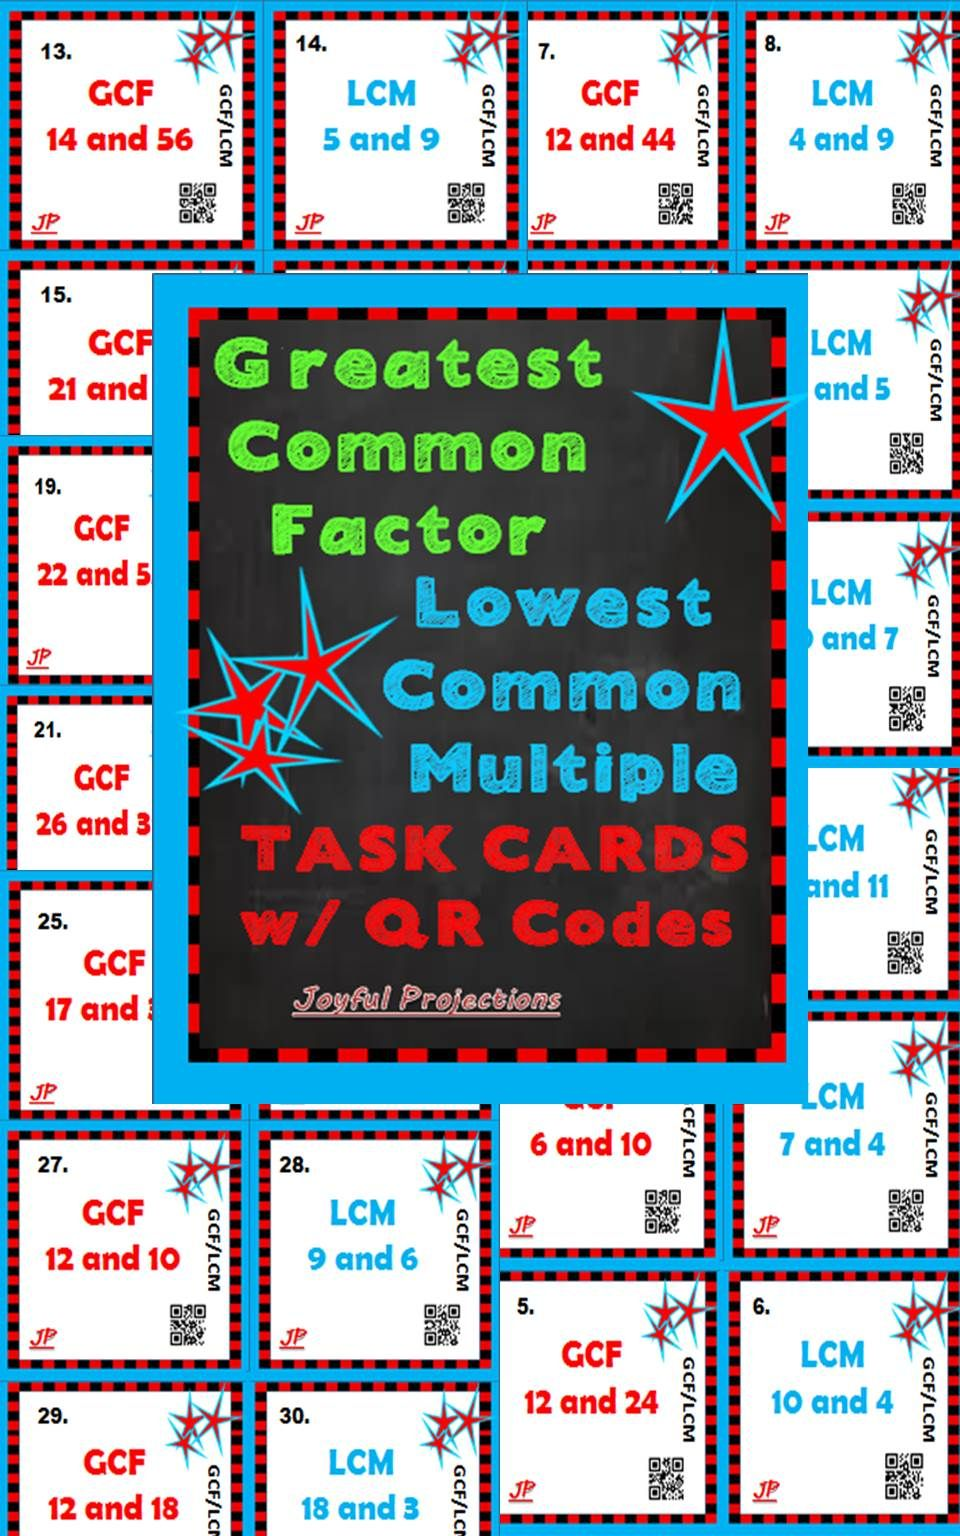 36 Task Cards 18 Gcf 18 Lcm Separate Or Combine Them For Great Fun Review Activities Of Greatest Common Factors Common Multiples Teaching Math Elementary [ 1536 x 960 Pixel ]